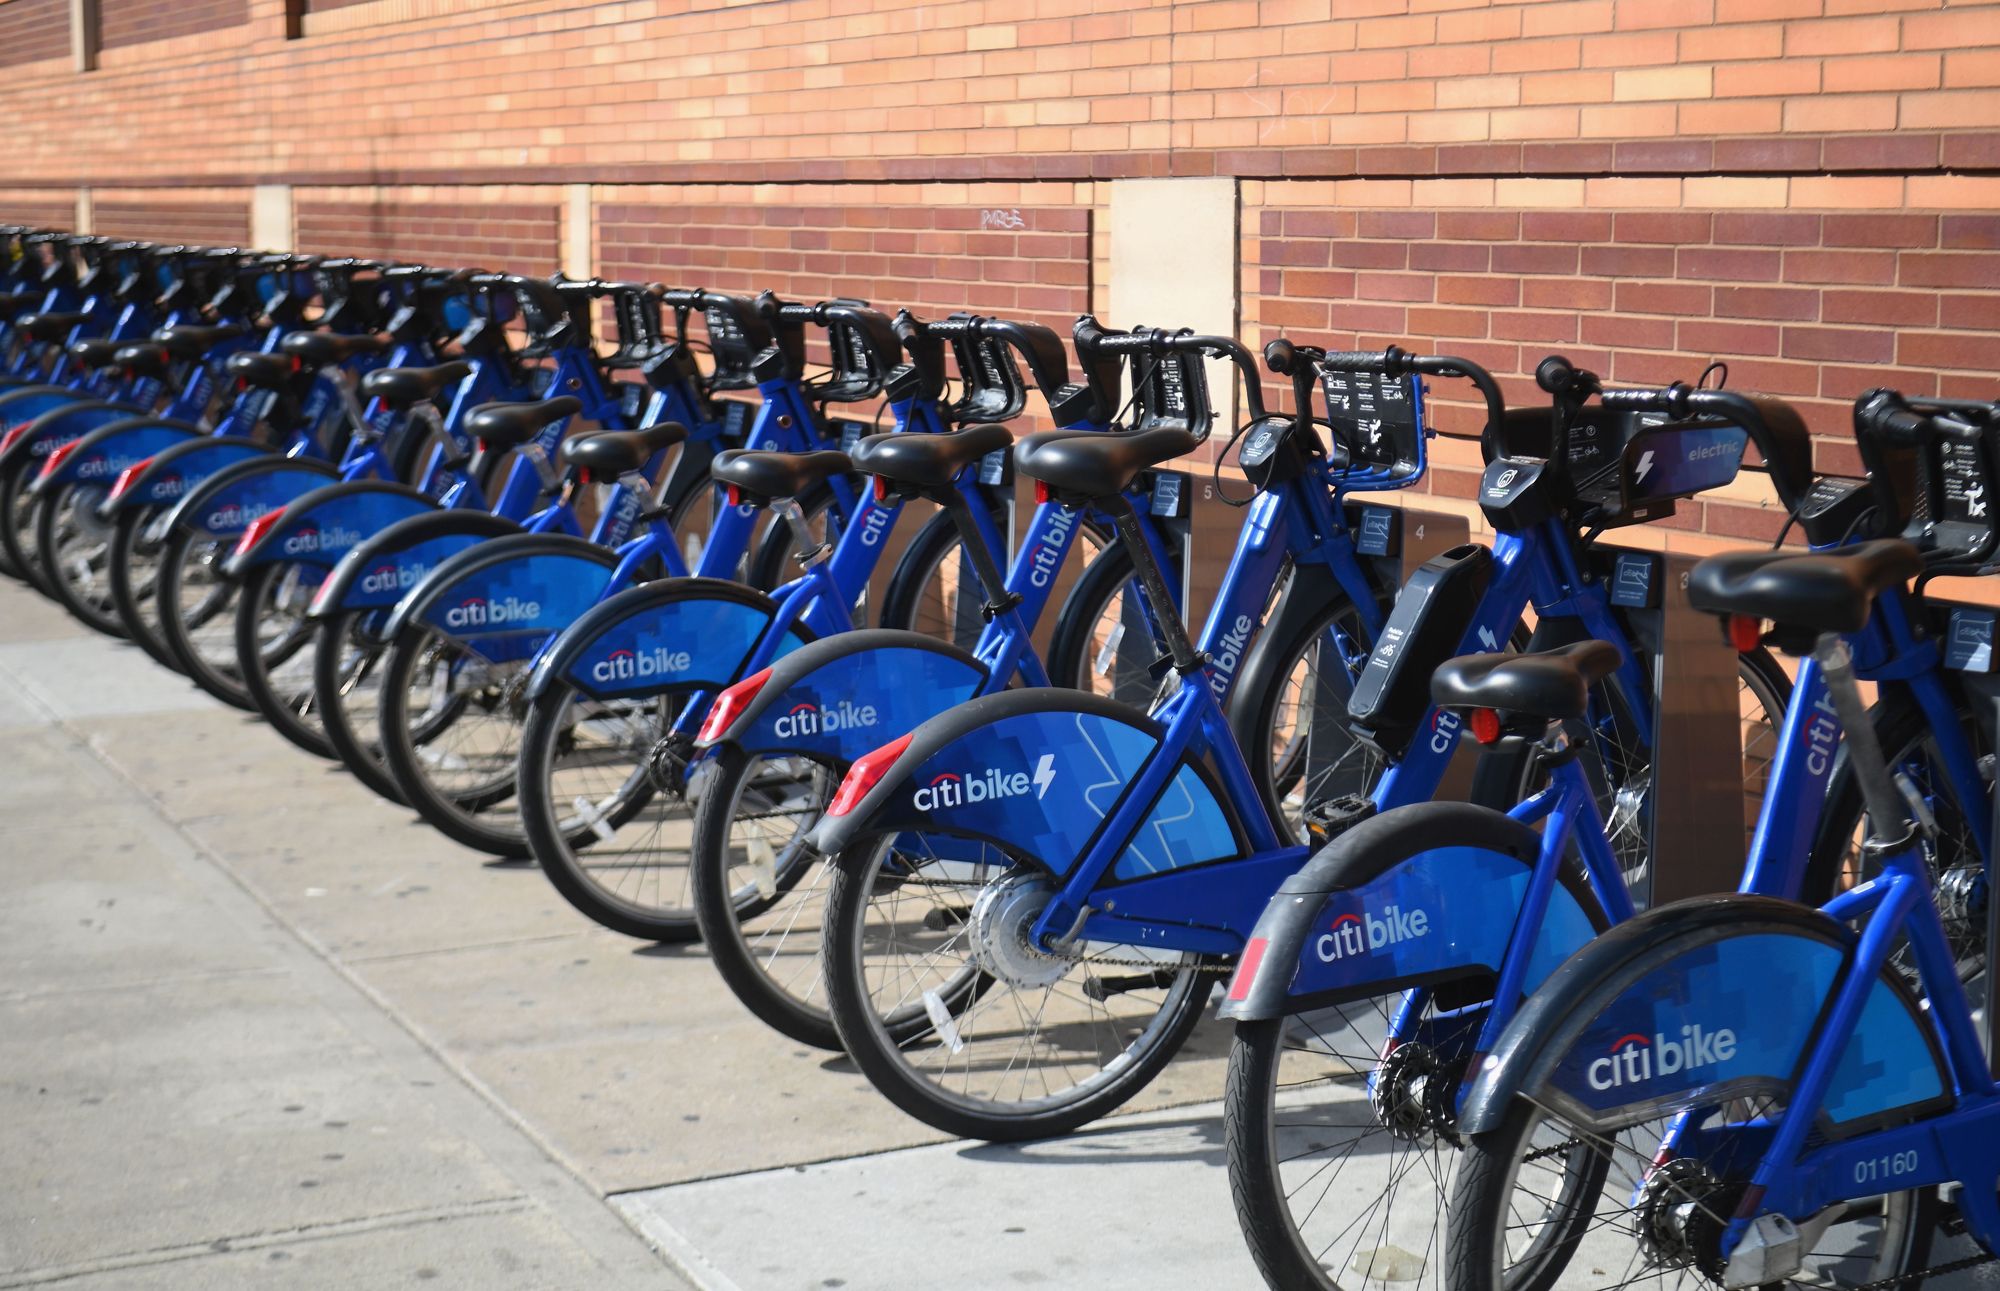 Cities criticized for shutting down bikeshare amid protests, pandemic